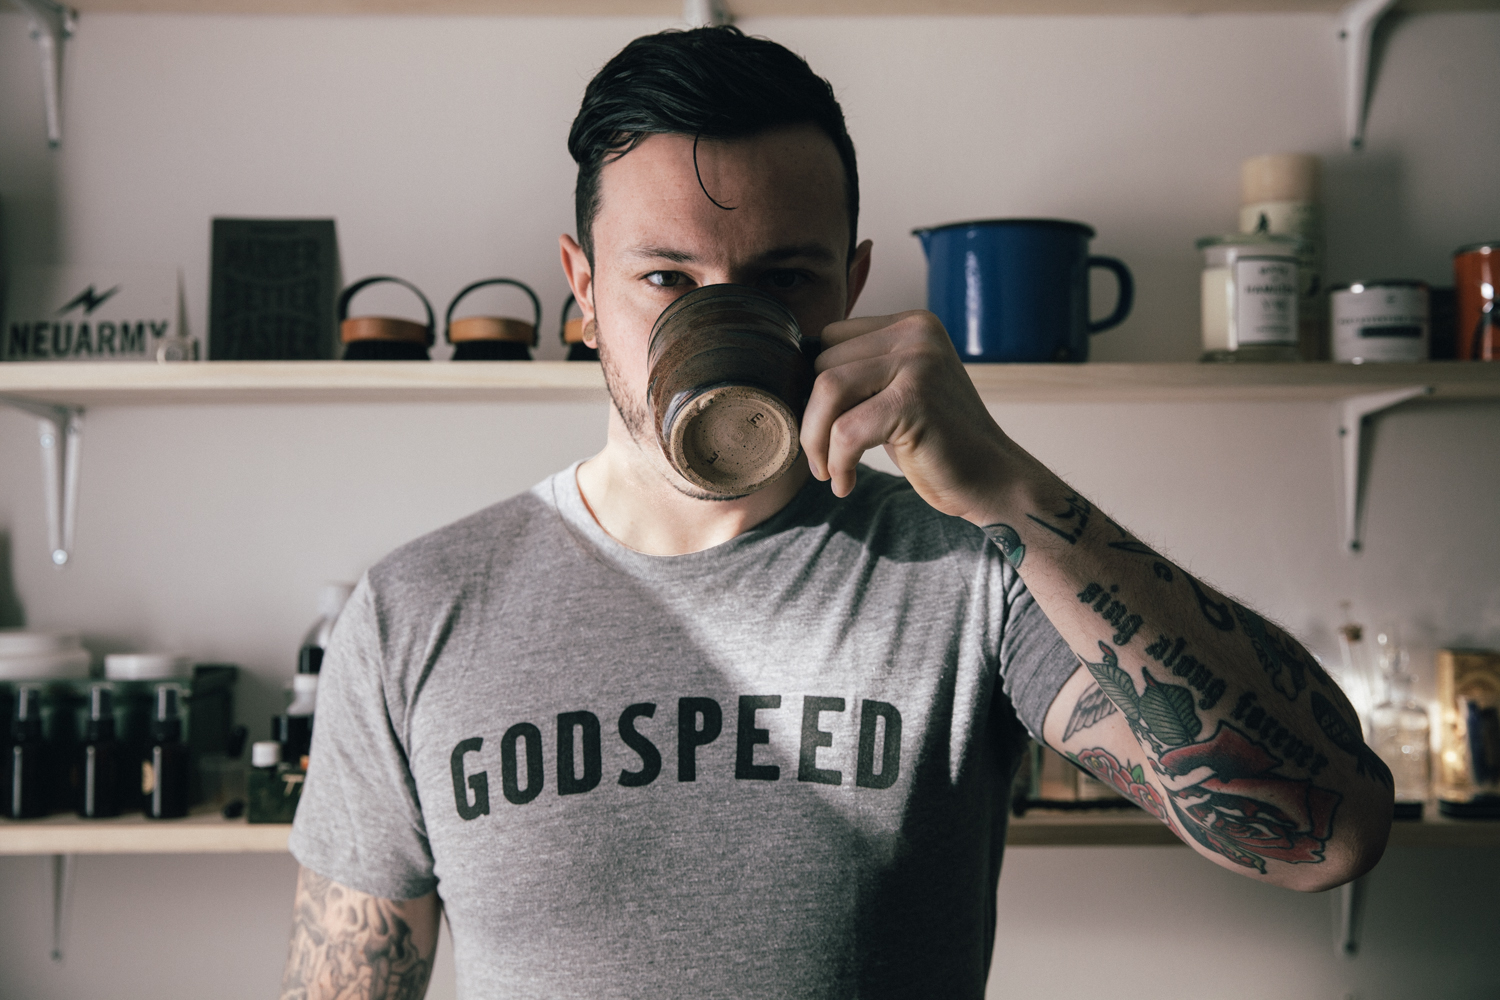 Allan Glanfield at home sporting a GodSpeed T.